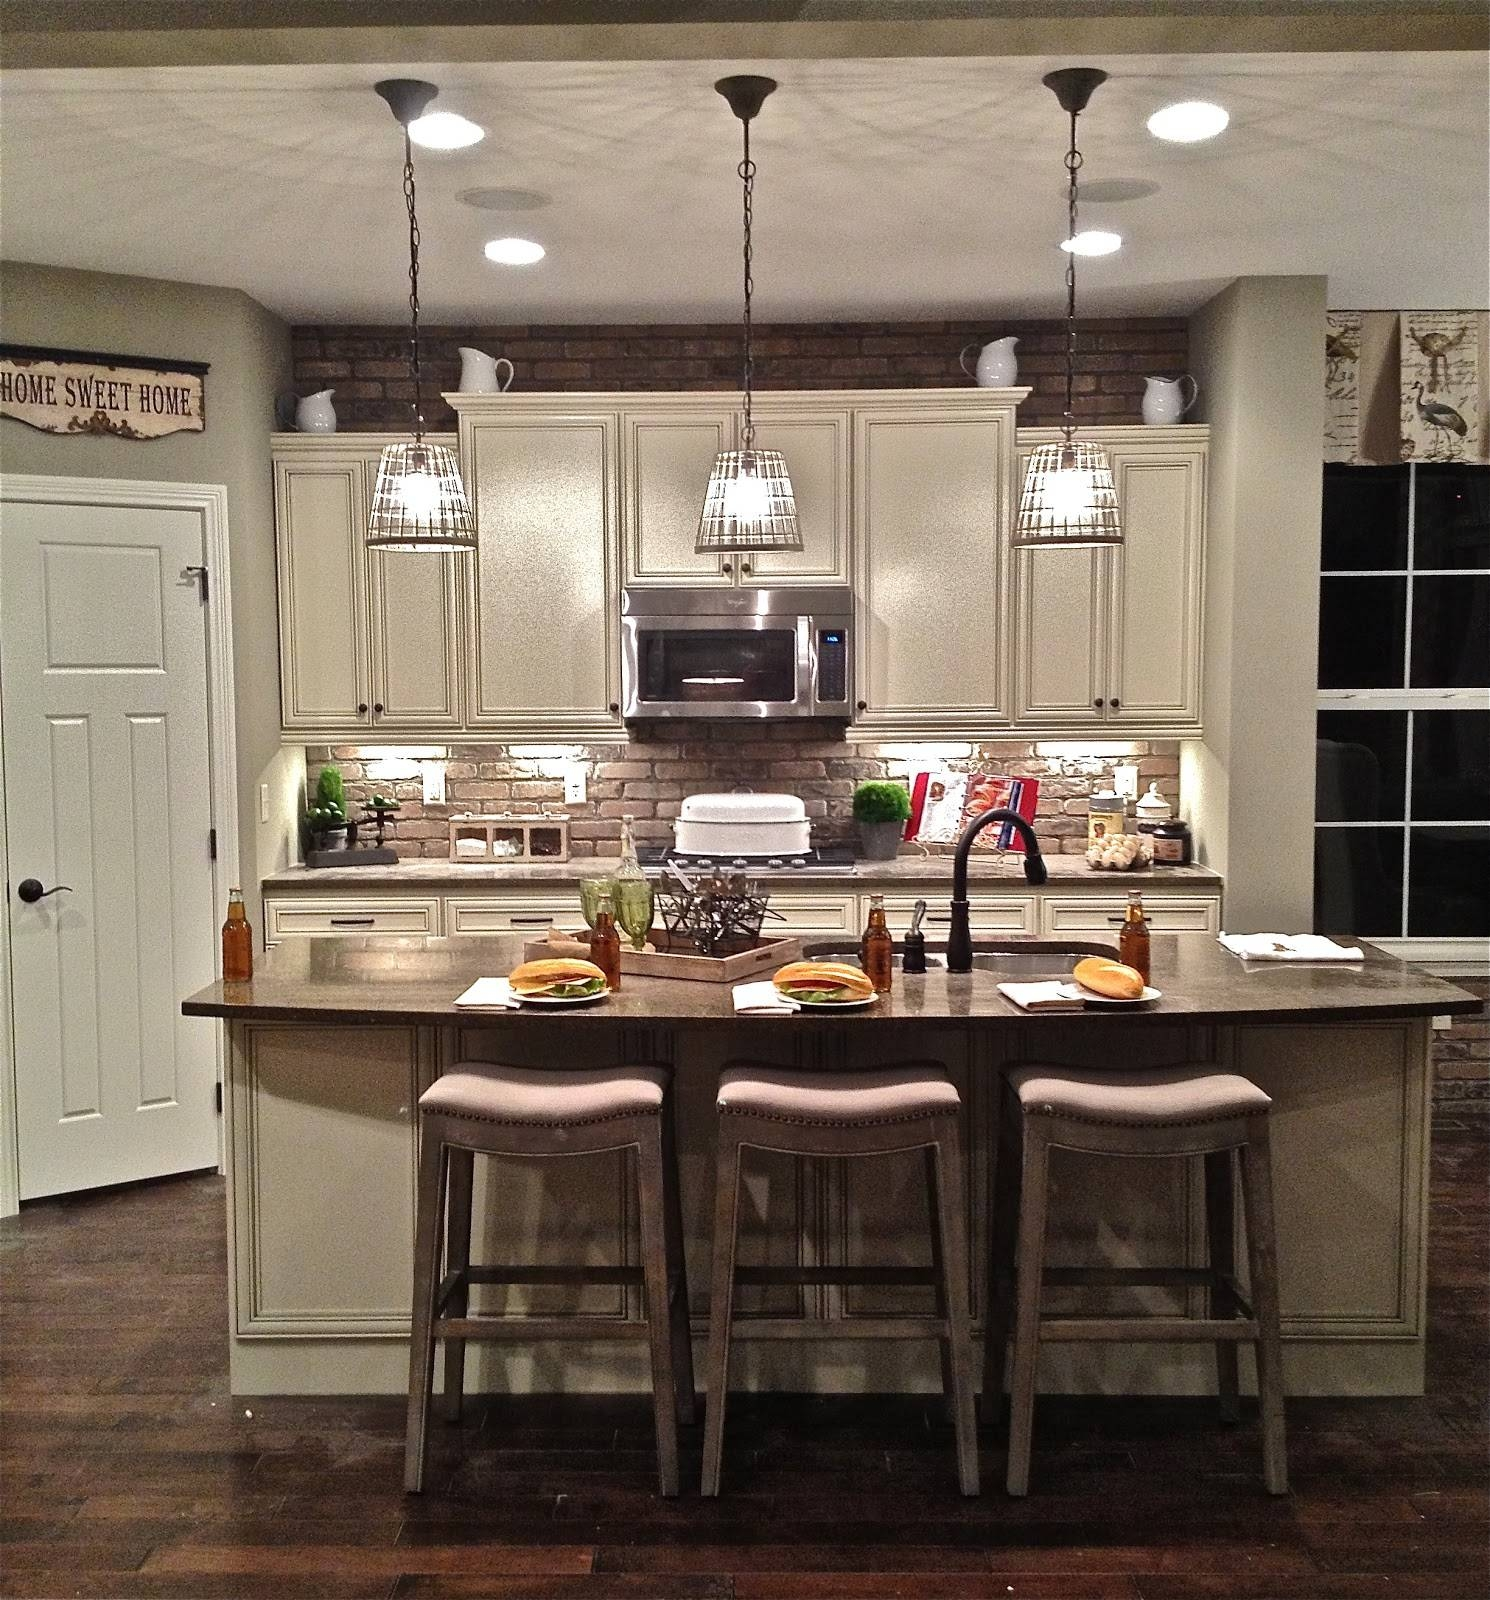 Pendant Lighting Ideas: Best Ideas Island Pendant Lights For with Island Pendant Lights (Image 14 of 15)